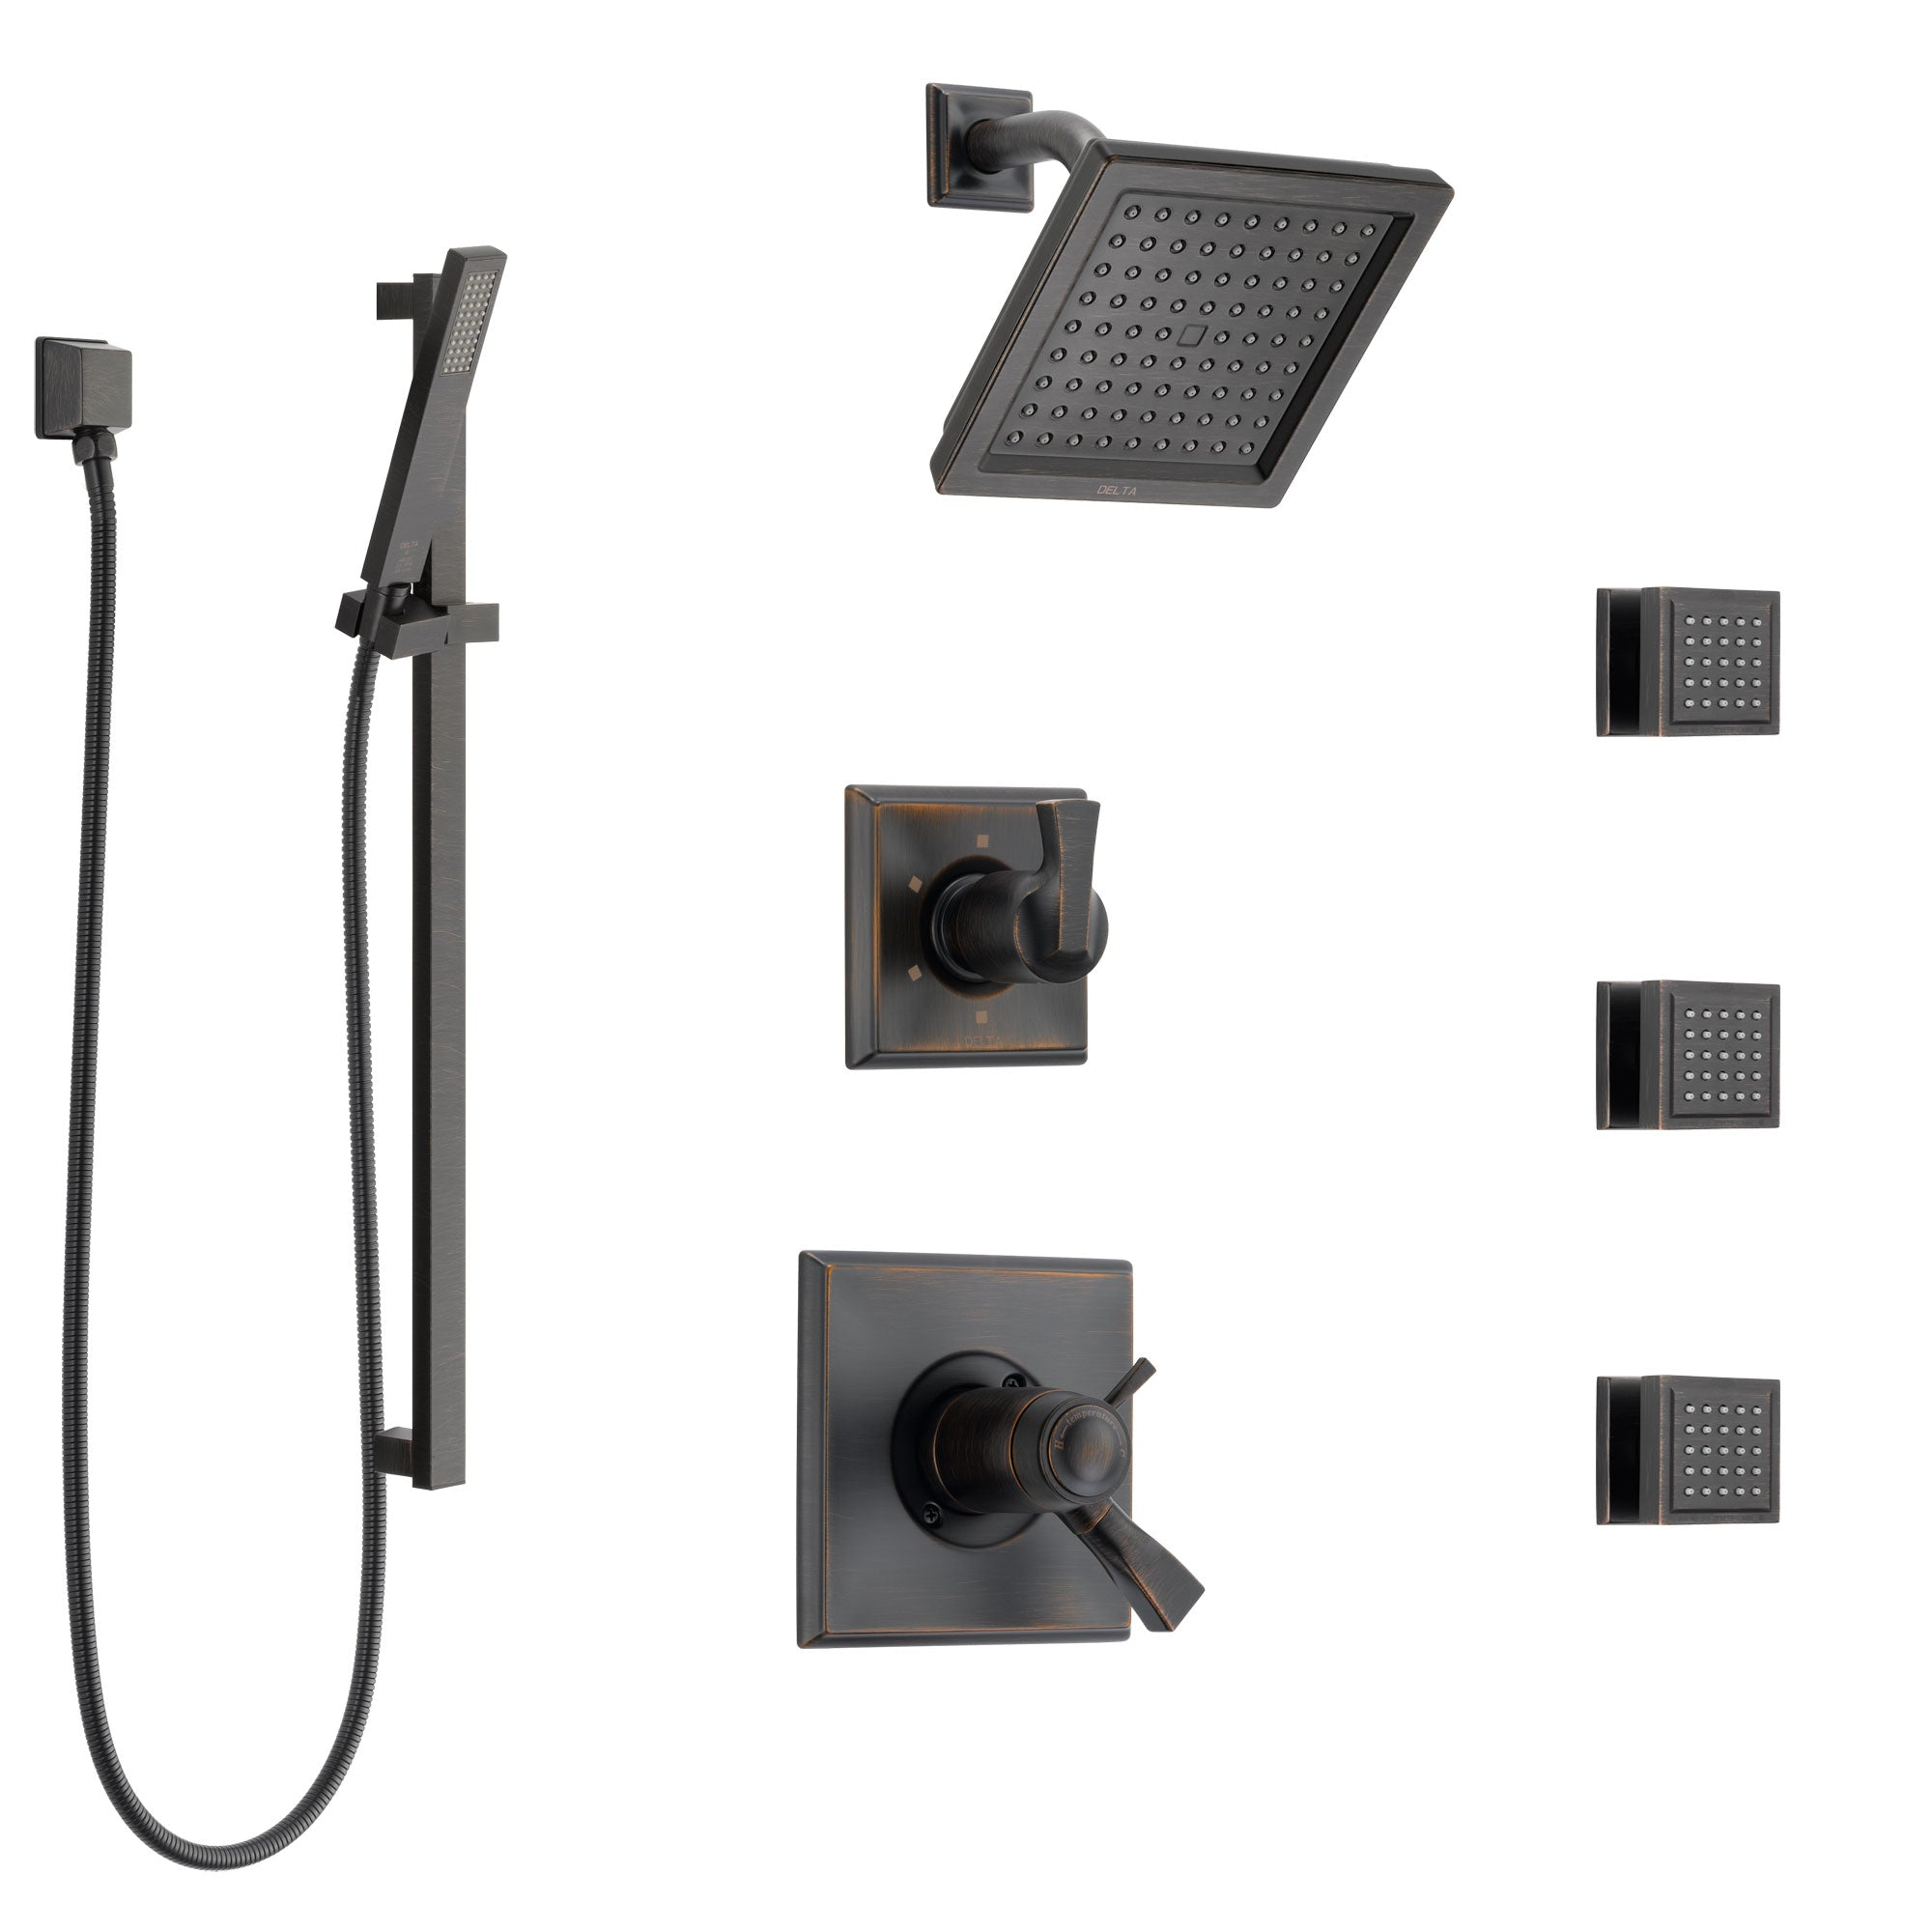 Delta Dryden Venetian Bronze Shower System with Dual Thermostatic Control, 6-Setting Diverter, Showerhead, 3 Body Sprays, and Hand Shower SS17T2512RB6